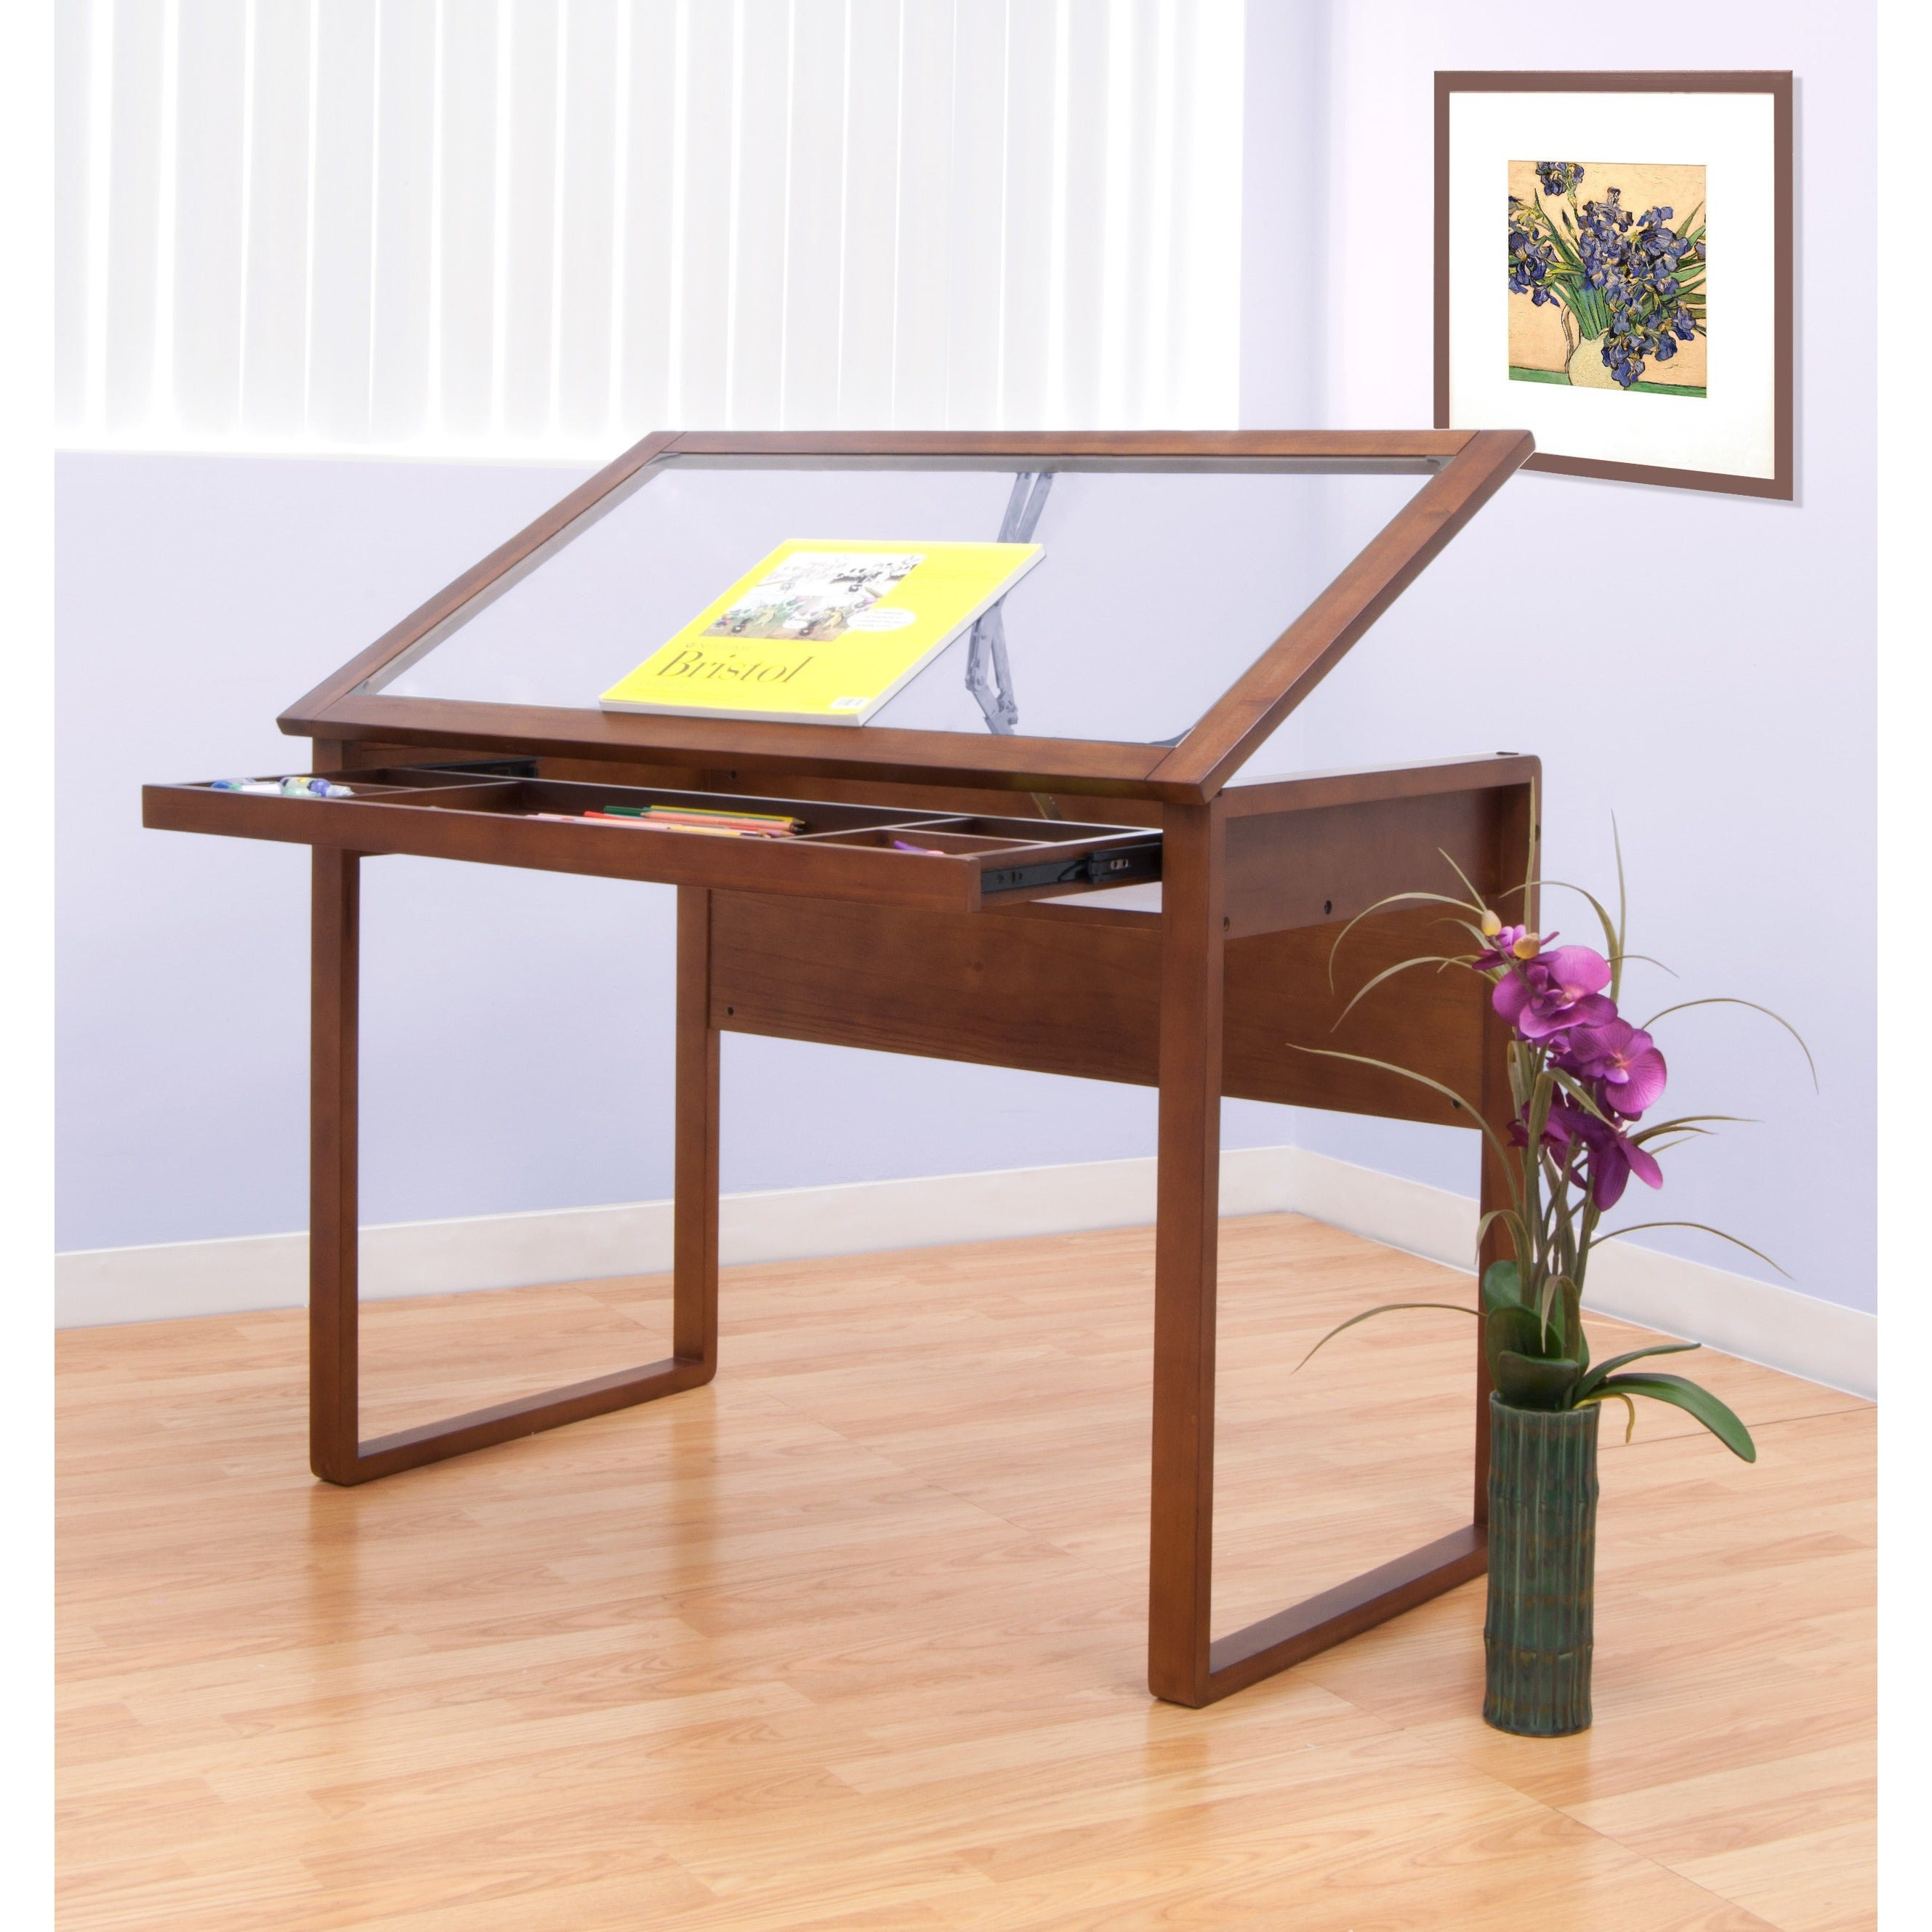 Shop Studio Designs Ponderosa Glass Top Solid Wood Frame Drafting Table    Free Shipping Today   Overstock.com   7179300